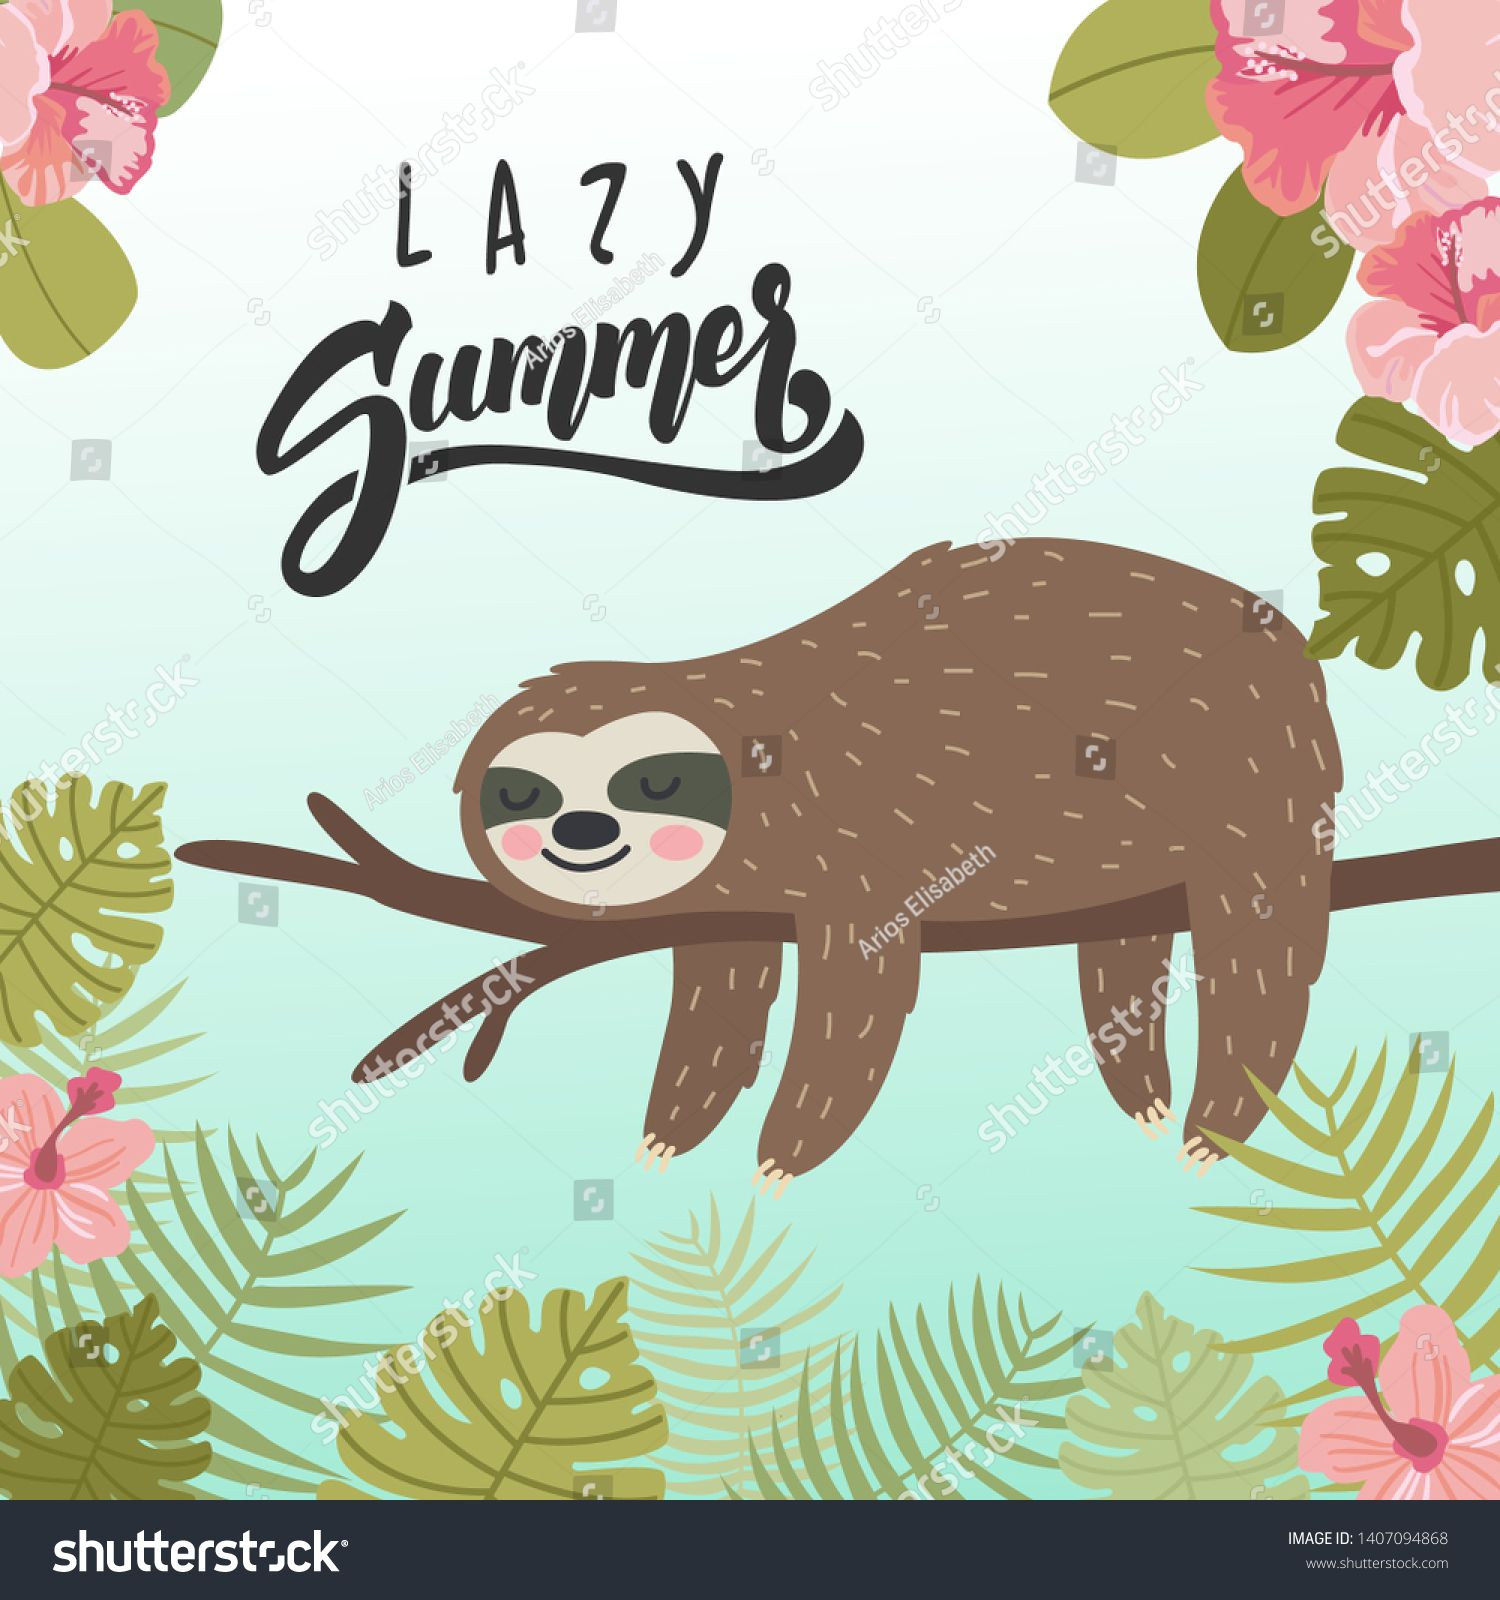 sumer banner with sleeping sloth